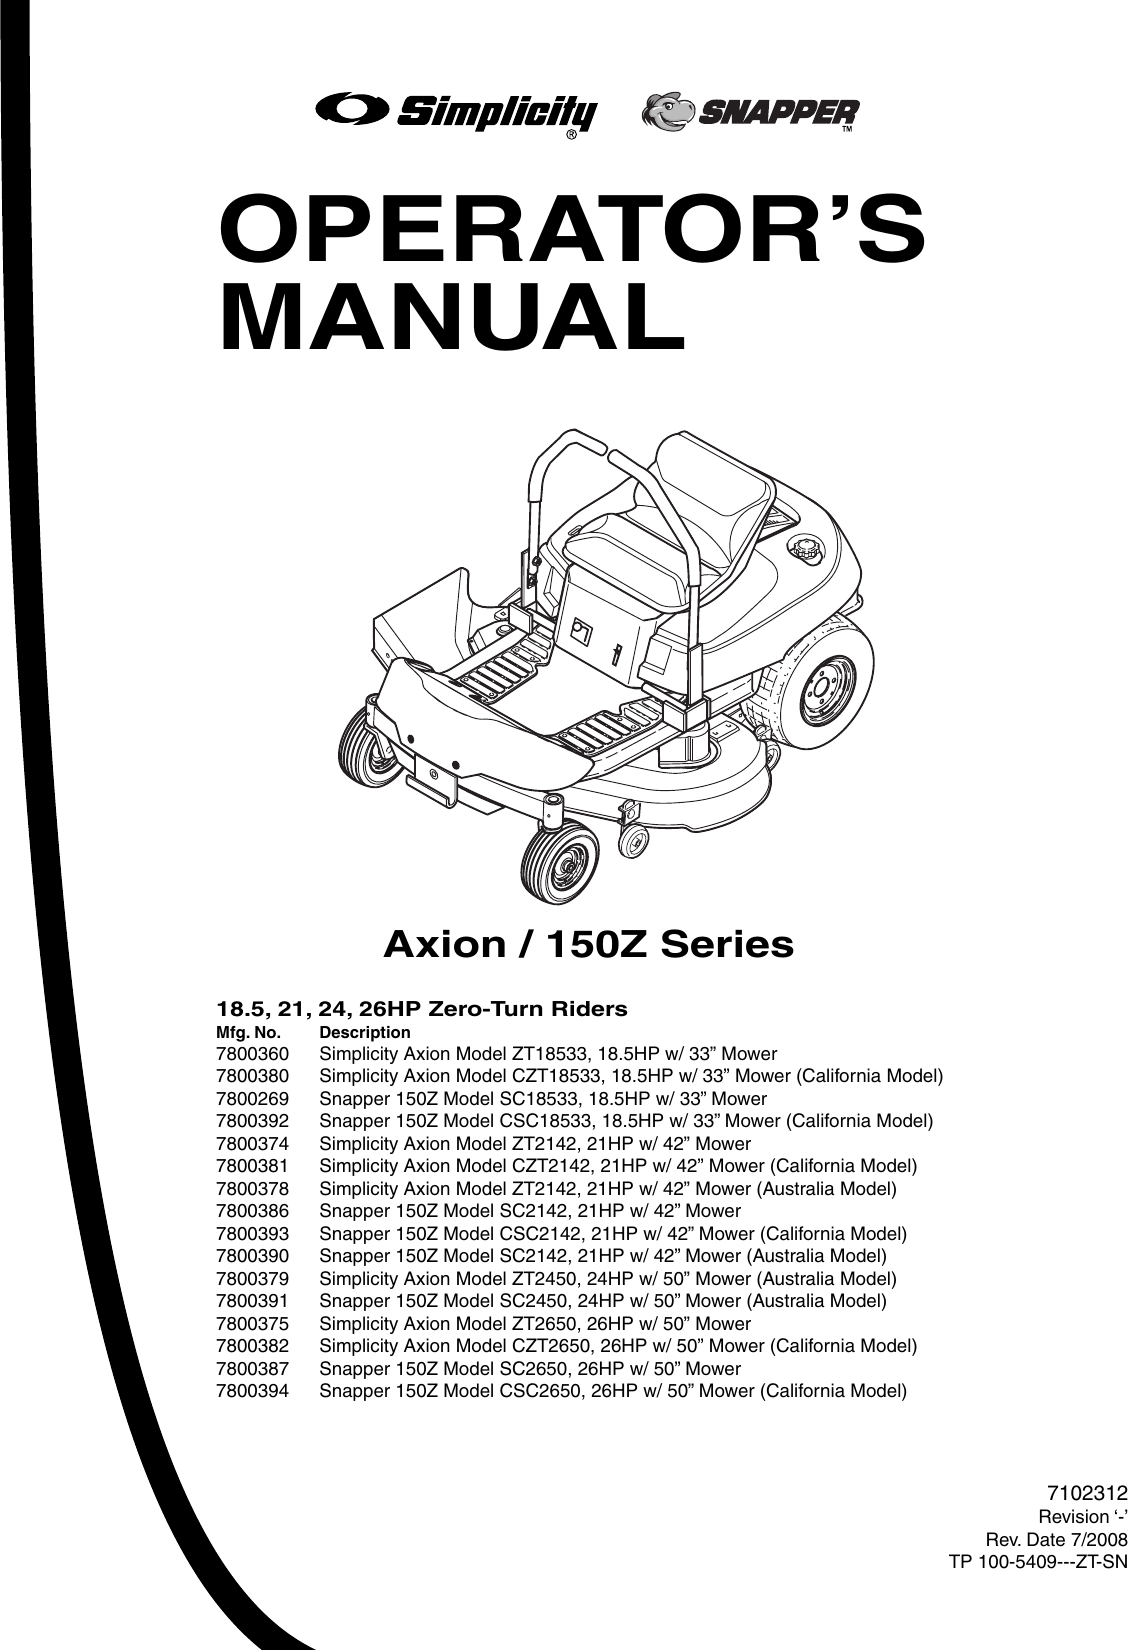 Snapper 150Z Series Users Manual